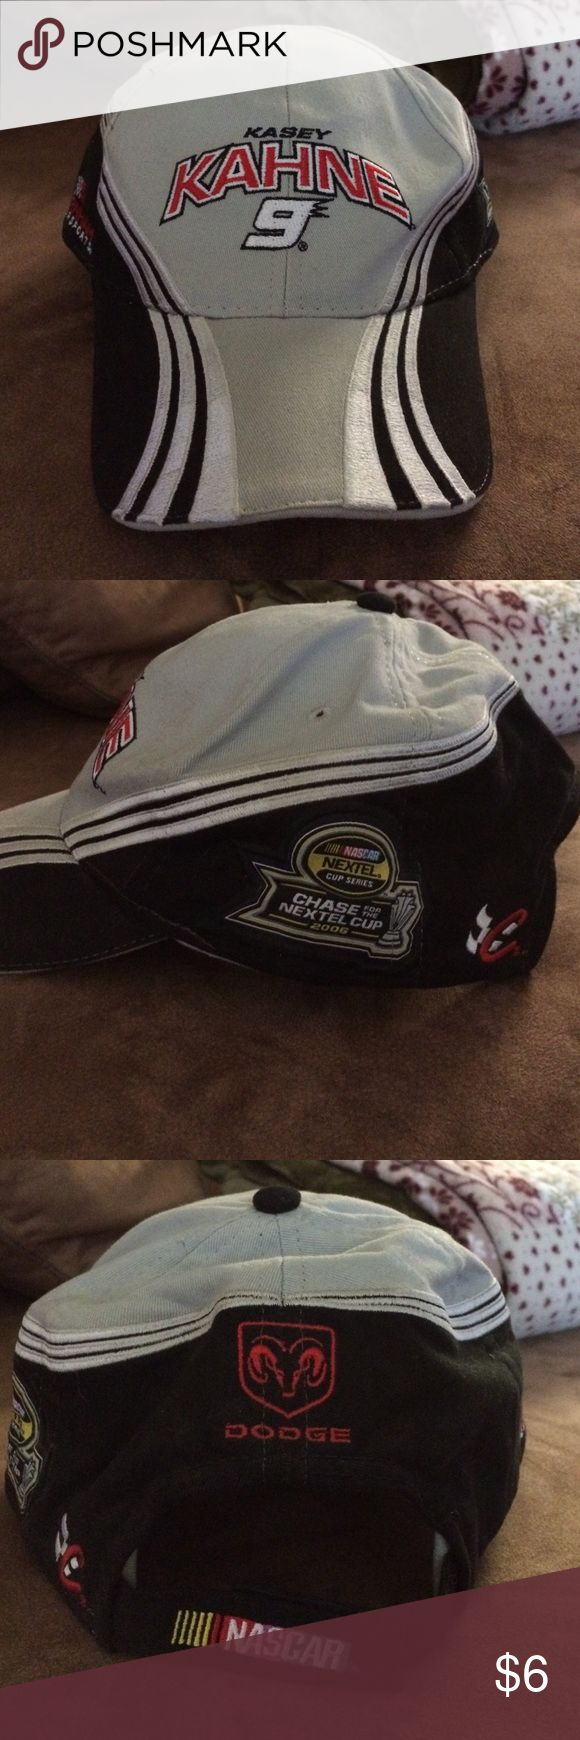 Brand new nascar hat Brand new Kasey Kahne #9 older hat but never worn   Black , grey and red MFG in US chase Authentics Accessories Hats